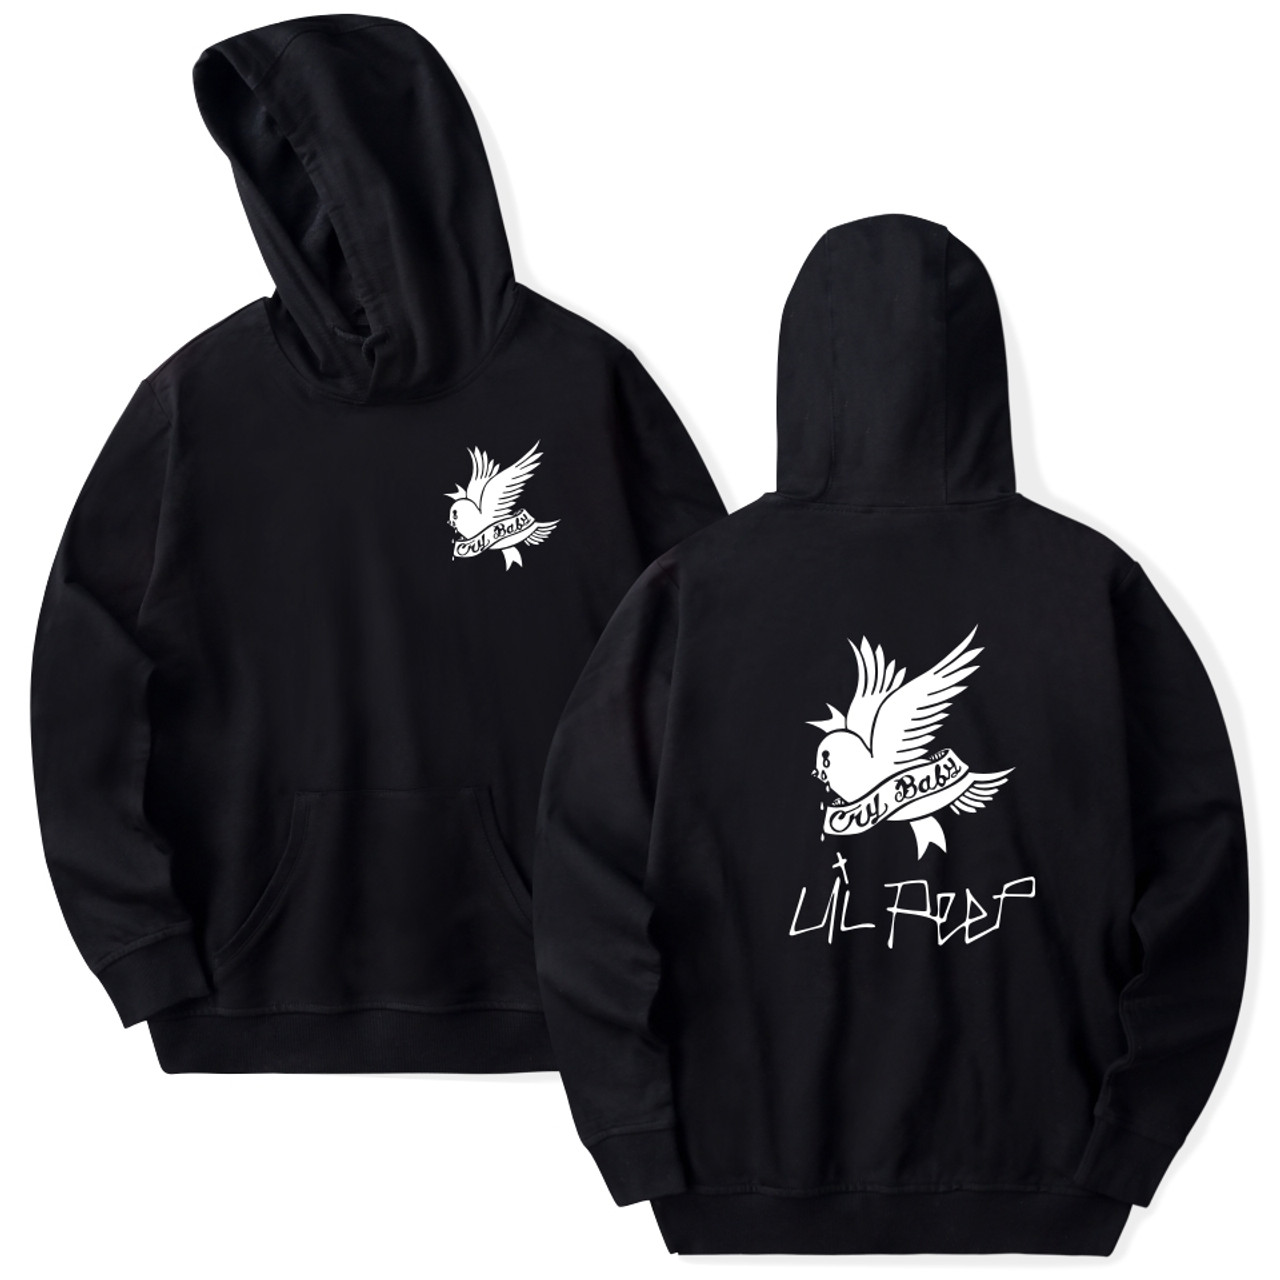 c596b4023 Lil Peep Hoodies Love Winter Men Sweatshirts Hooded Pullover Casual ...